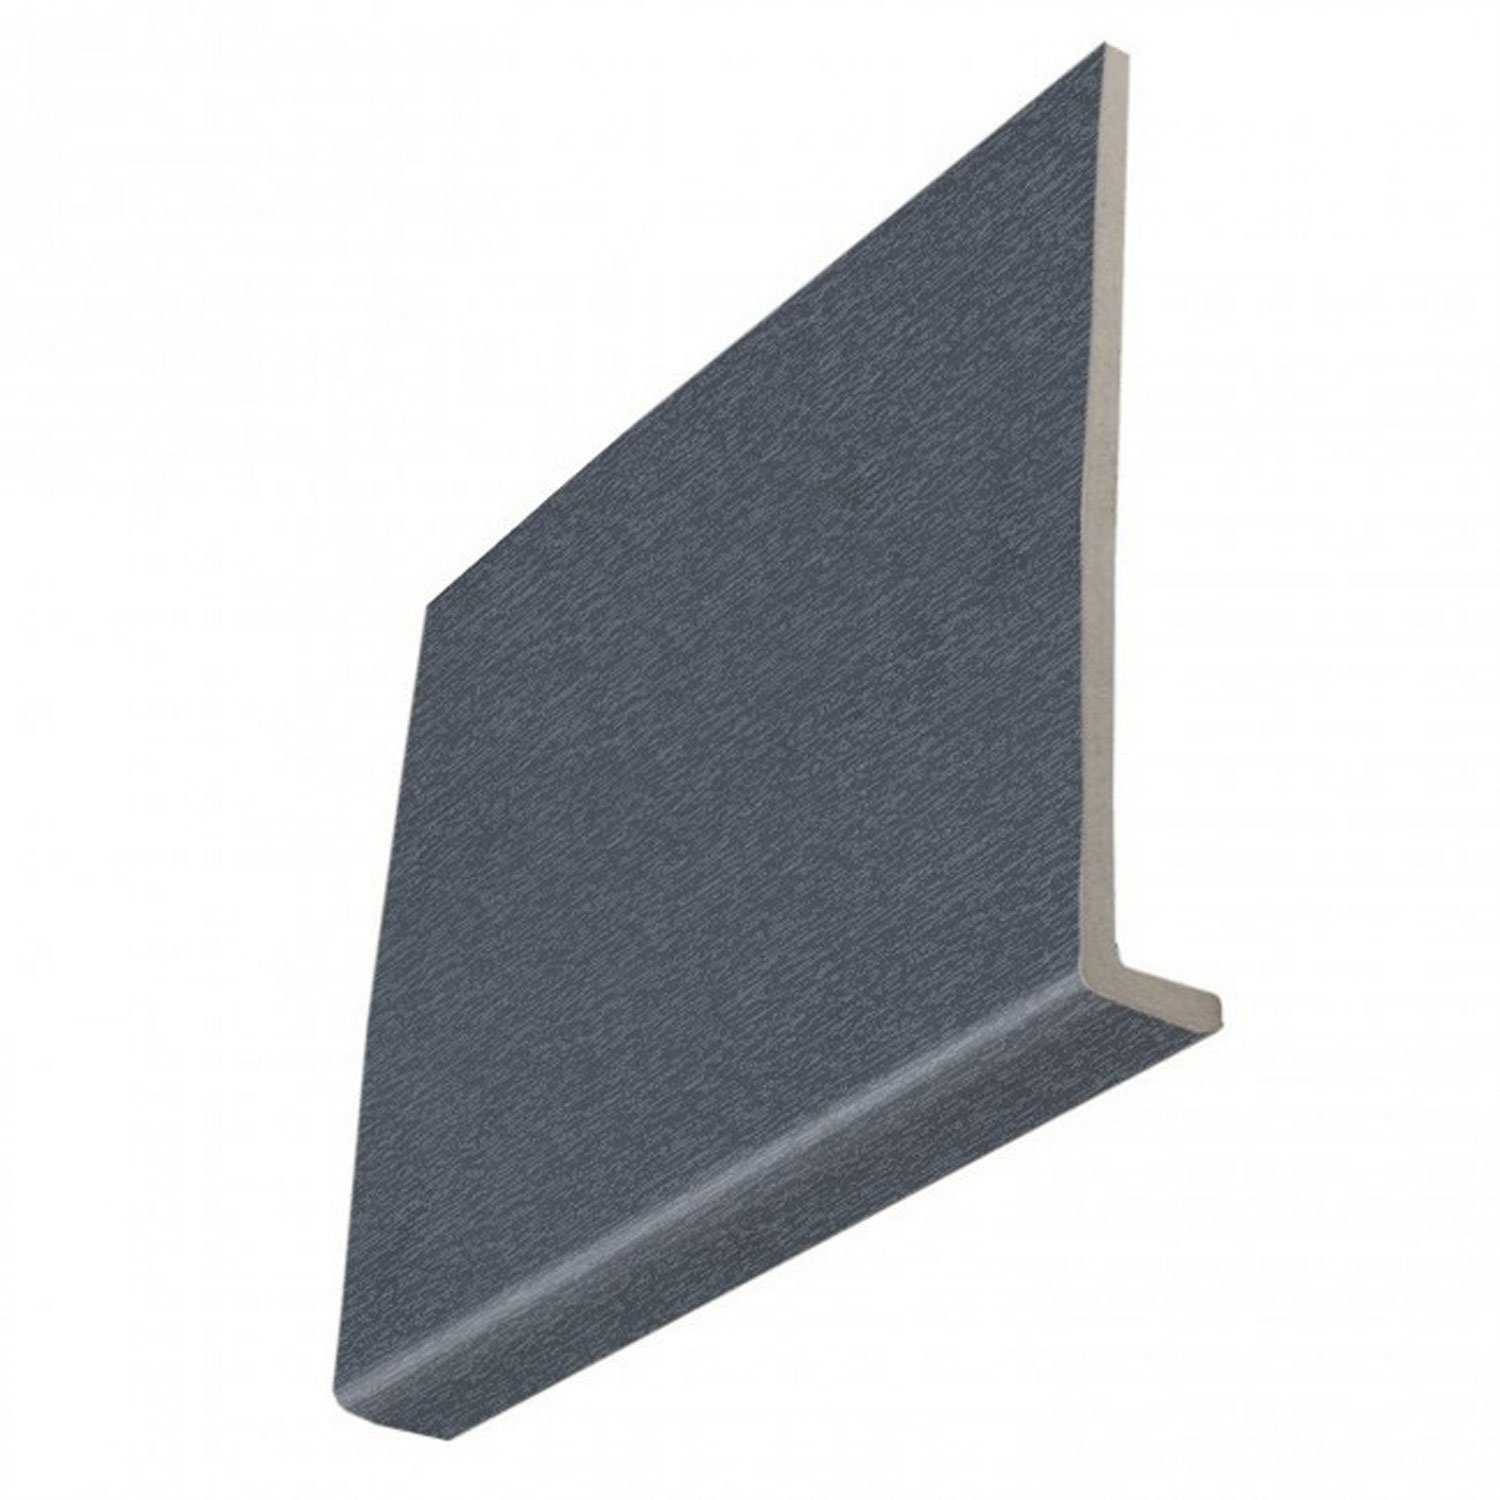 Anthracite Grey Woodgrain Fascia Boards